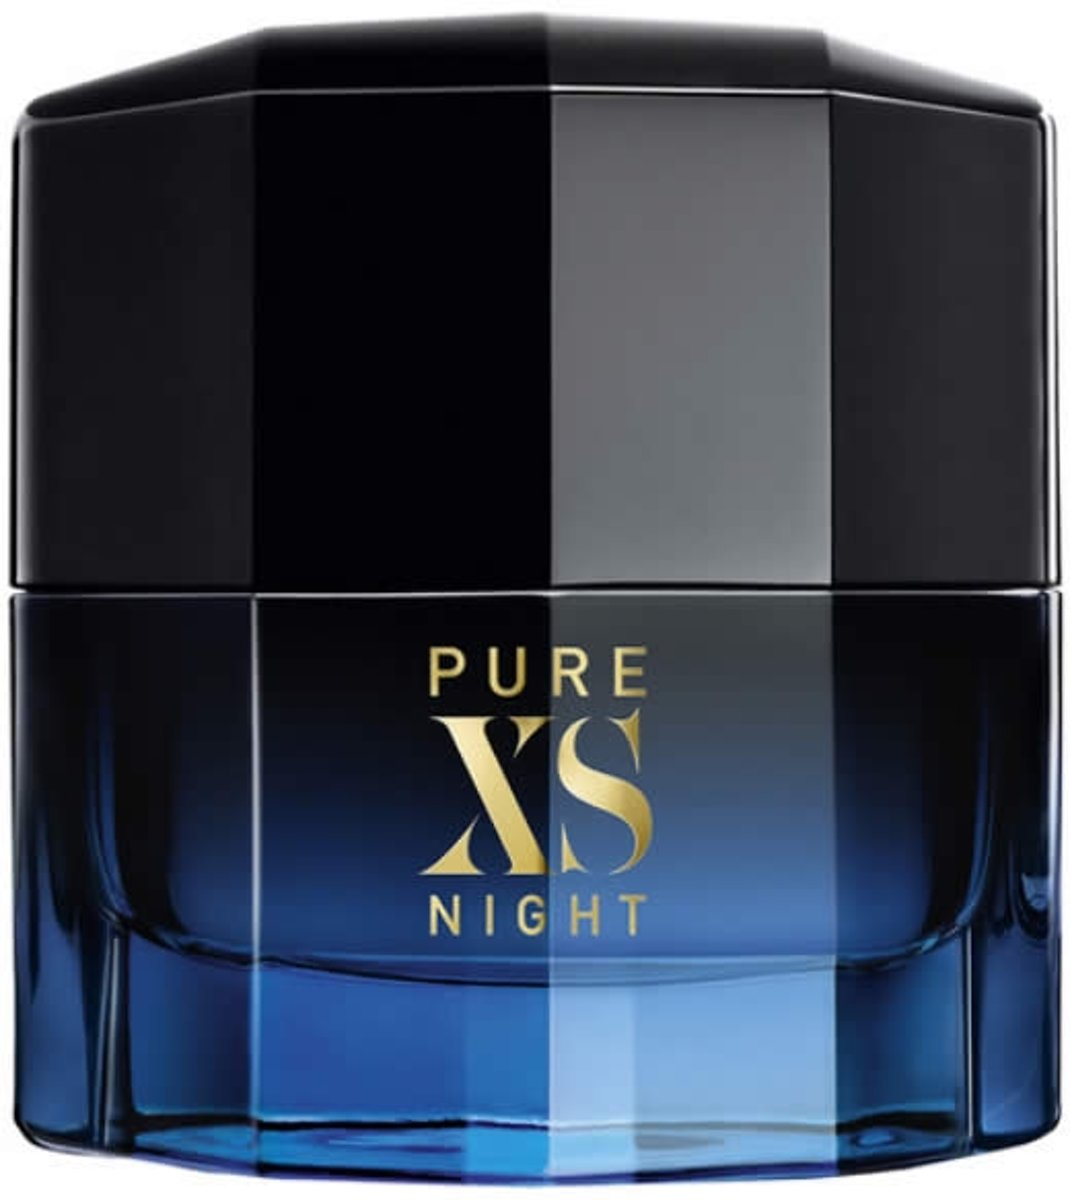 MULTI BUNDEL 3 stuks Paco Rabanne Pure Xs Night Eau De Perfume Spray 50ml